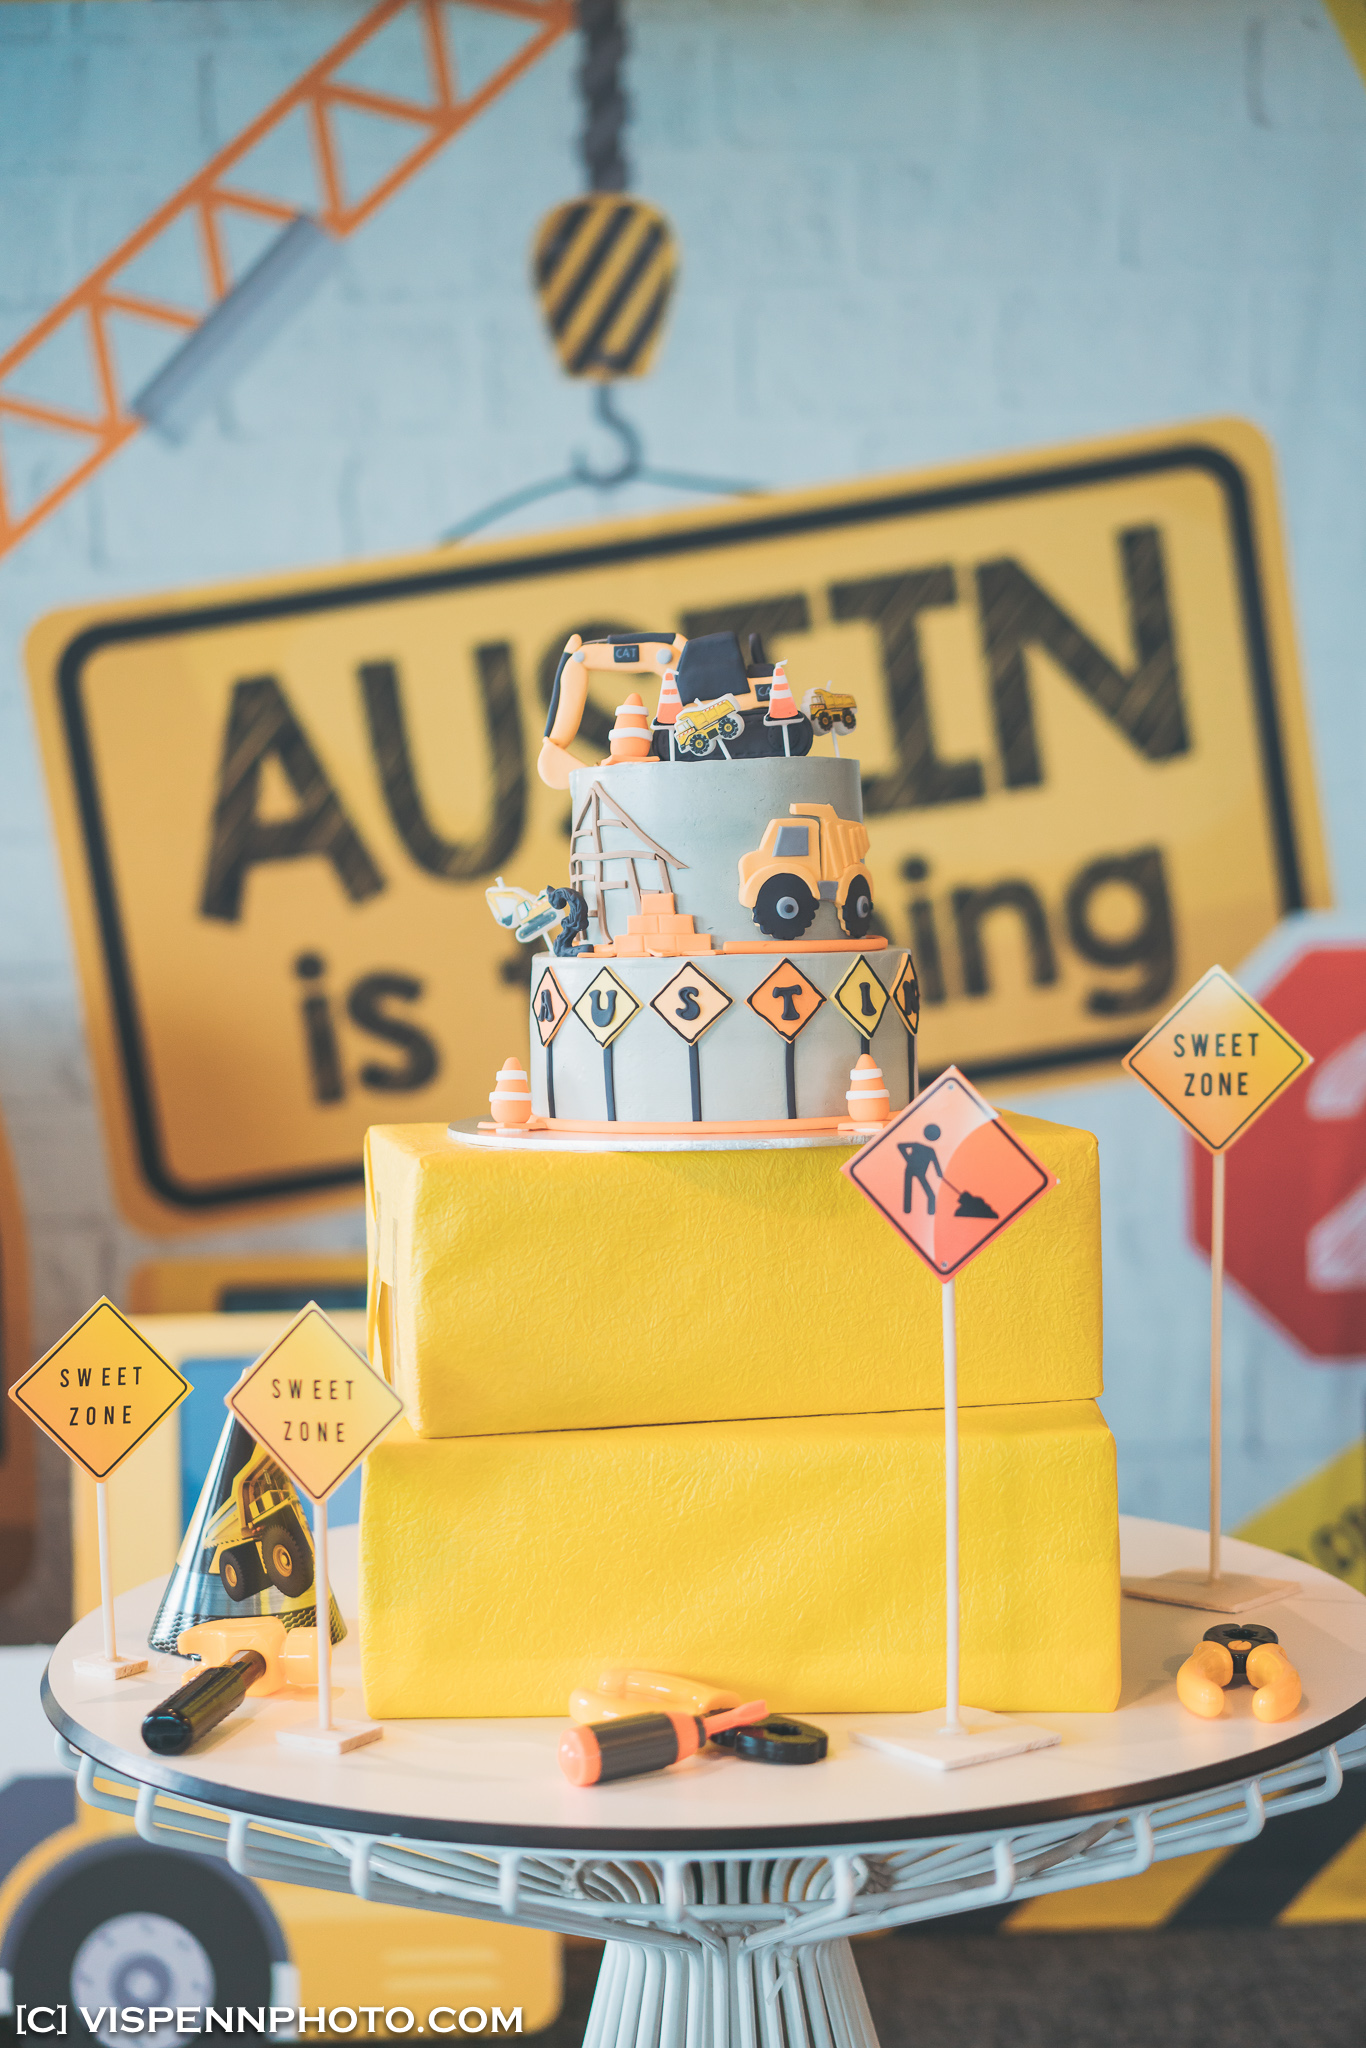 Melbourne Baby Family Birthday Party Photographer 墨尔本 百日宴 满月宴 周岁宴 摄影 VISPENN Austin 2384 Sony VISPENN